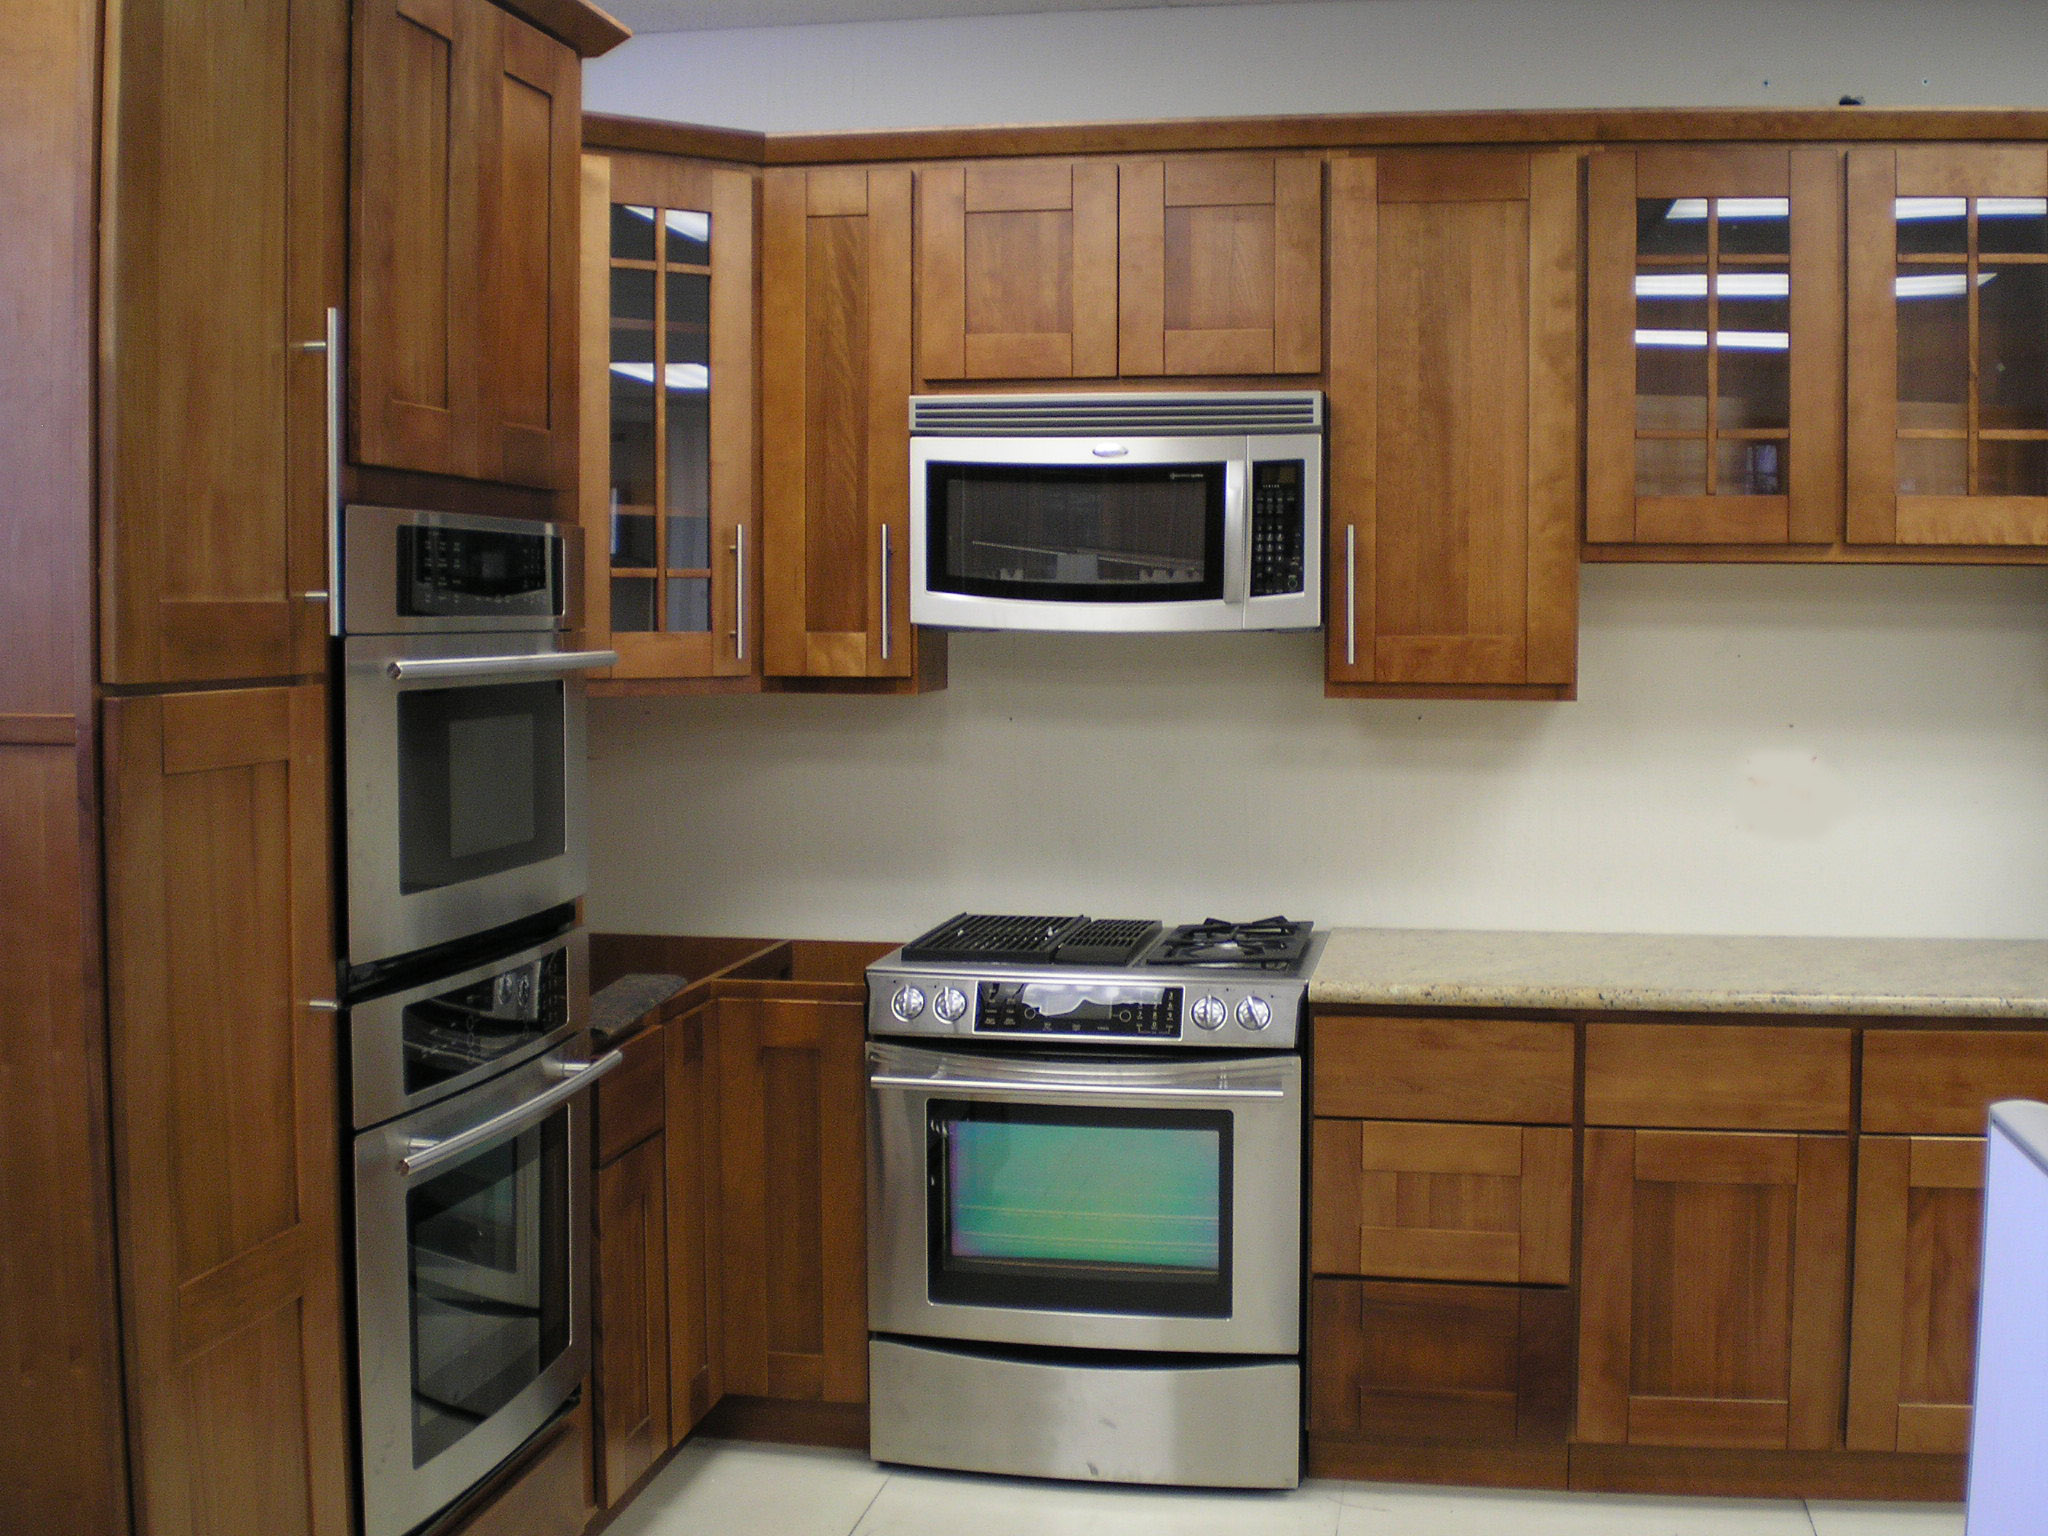 oak kitchen pantry cabinet oak kitchen cabinets Oak kitchen pantry cabinet Photo 4